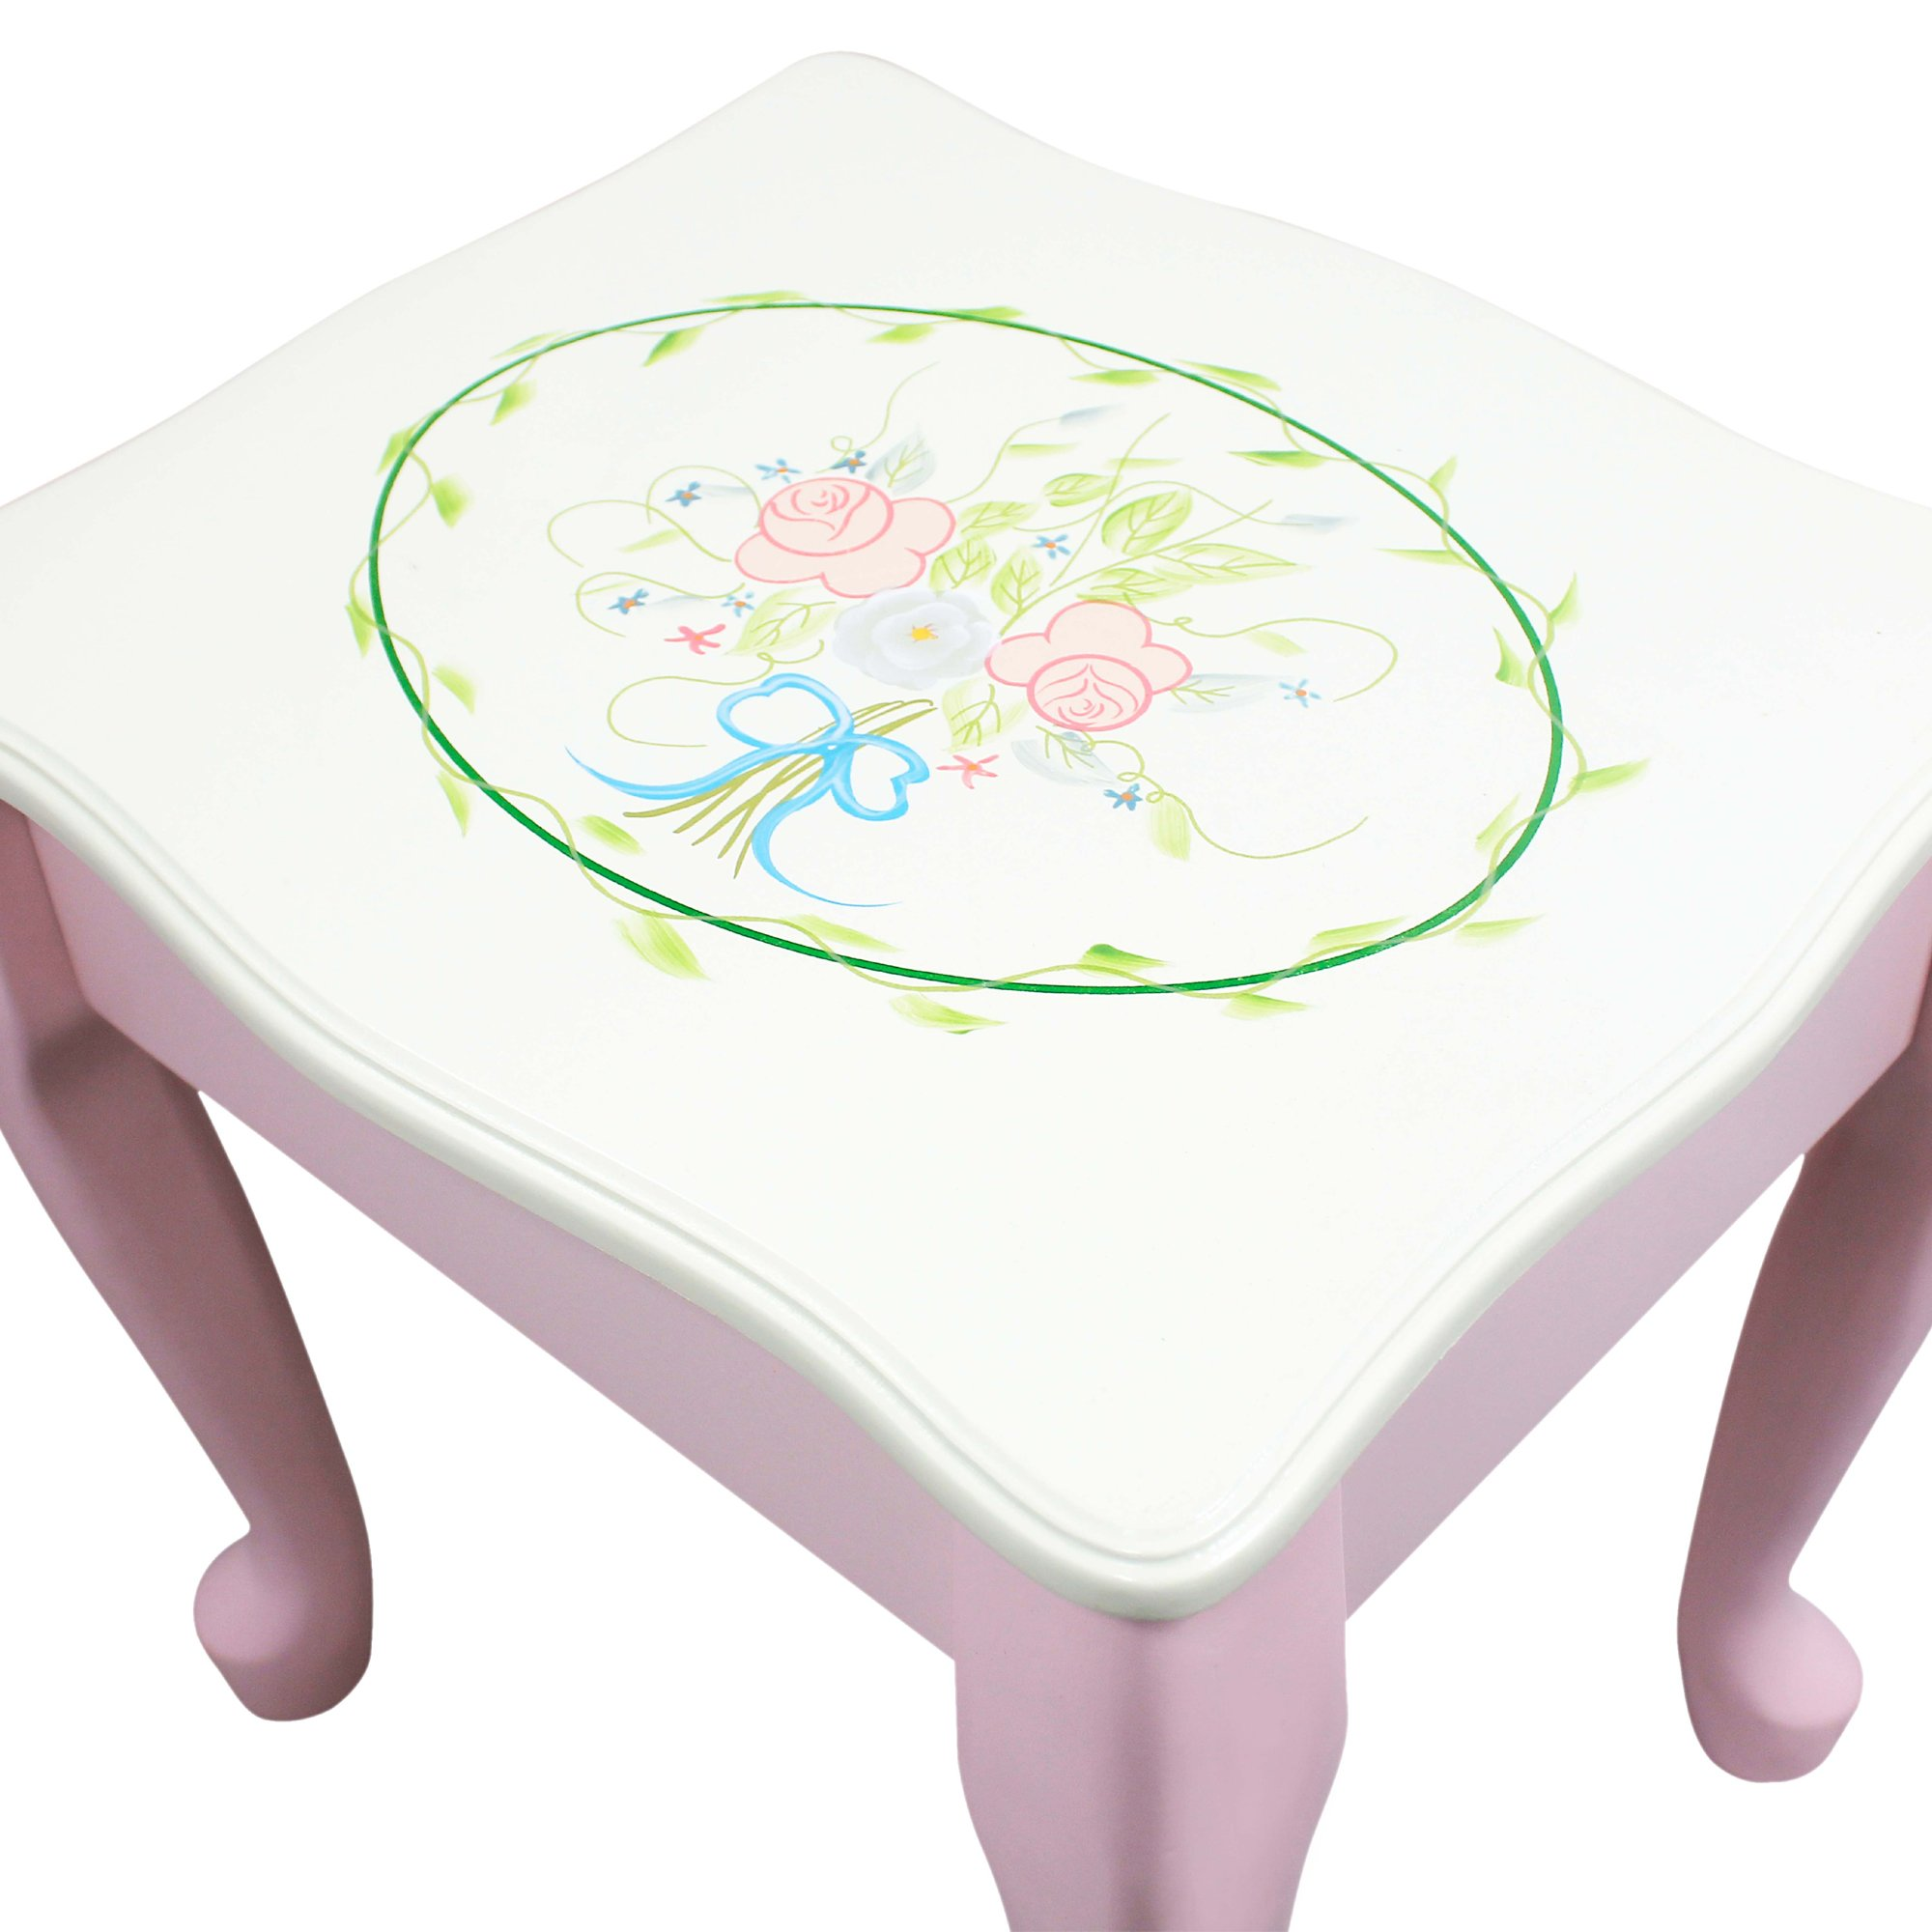 Fantasy Fields - Bouquet Thematic Kids Classic Vanity Table and Stool Set with Mirror   Imagination Inspiring Hand Crafted & Hand Painted Details   Non-Toxic, Lead Free Water-based Paint by Teamson Design Corp (Image #8)